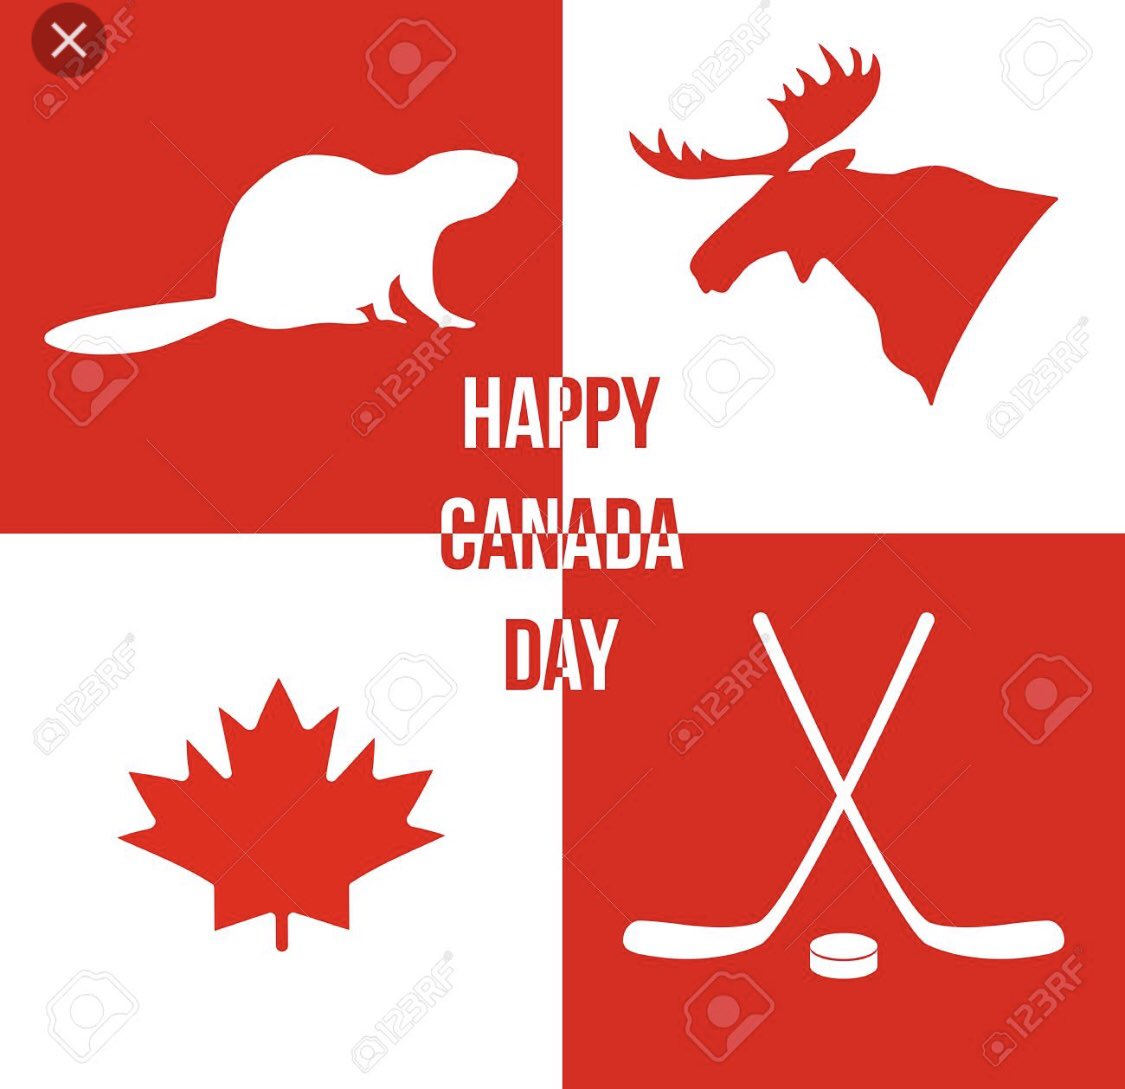 Blueprint hockey blueprinthockey twitter happy hockey canada day to all our family and friends out there hope you have a great july 1st 98 more days till puck drop time to start training malvernweather Images